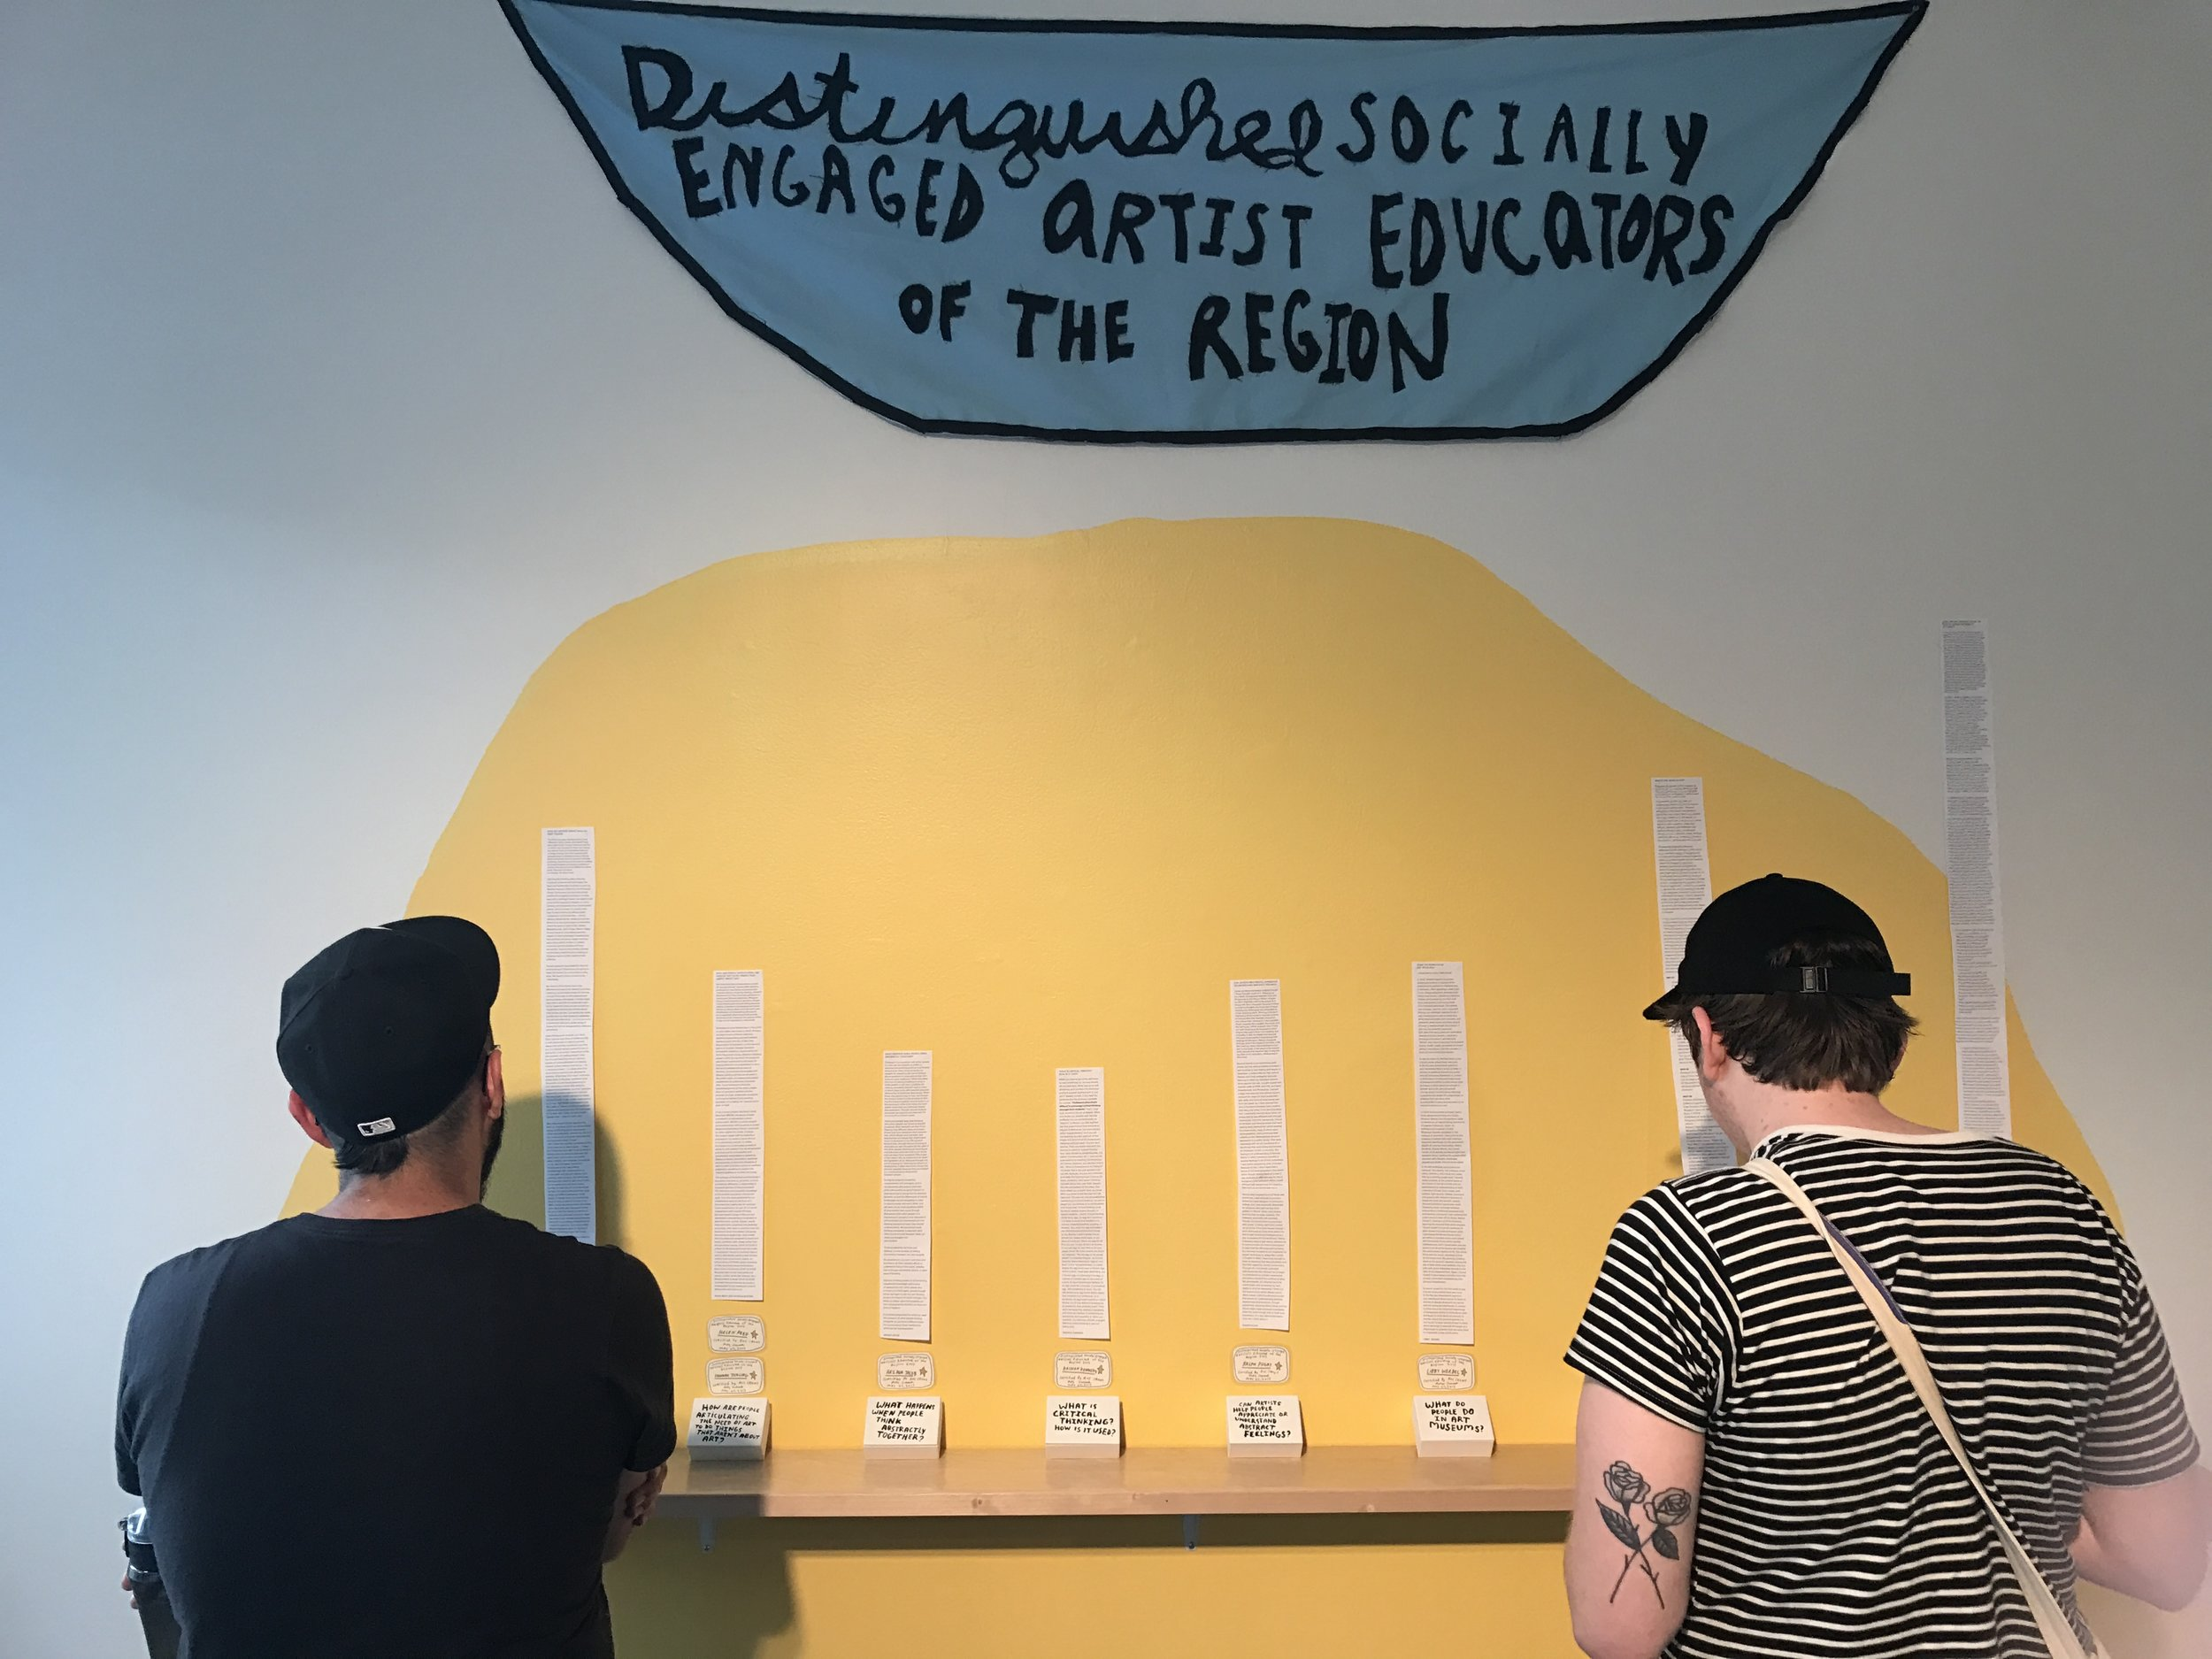 The eleven Distinguished Socially-Engaged Art(ist) Educators of the Region are people that fall into multiple categories related to art-education, and the region they hail from is my mind - they've all shaped how I think about socially-engaged art and public education. Their essays were installed as scrolls in the gallery along with their official card and hand-painted box (this set of items is their physical award).